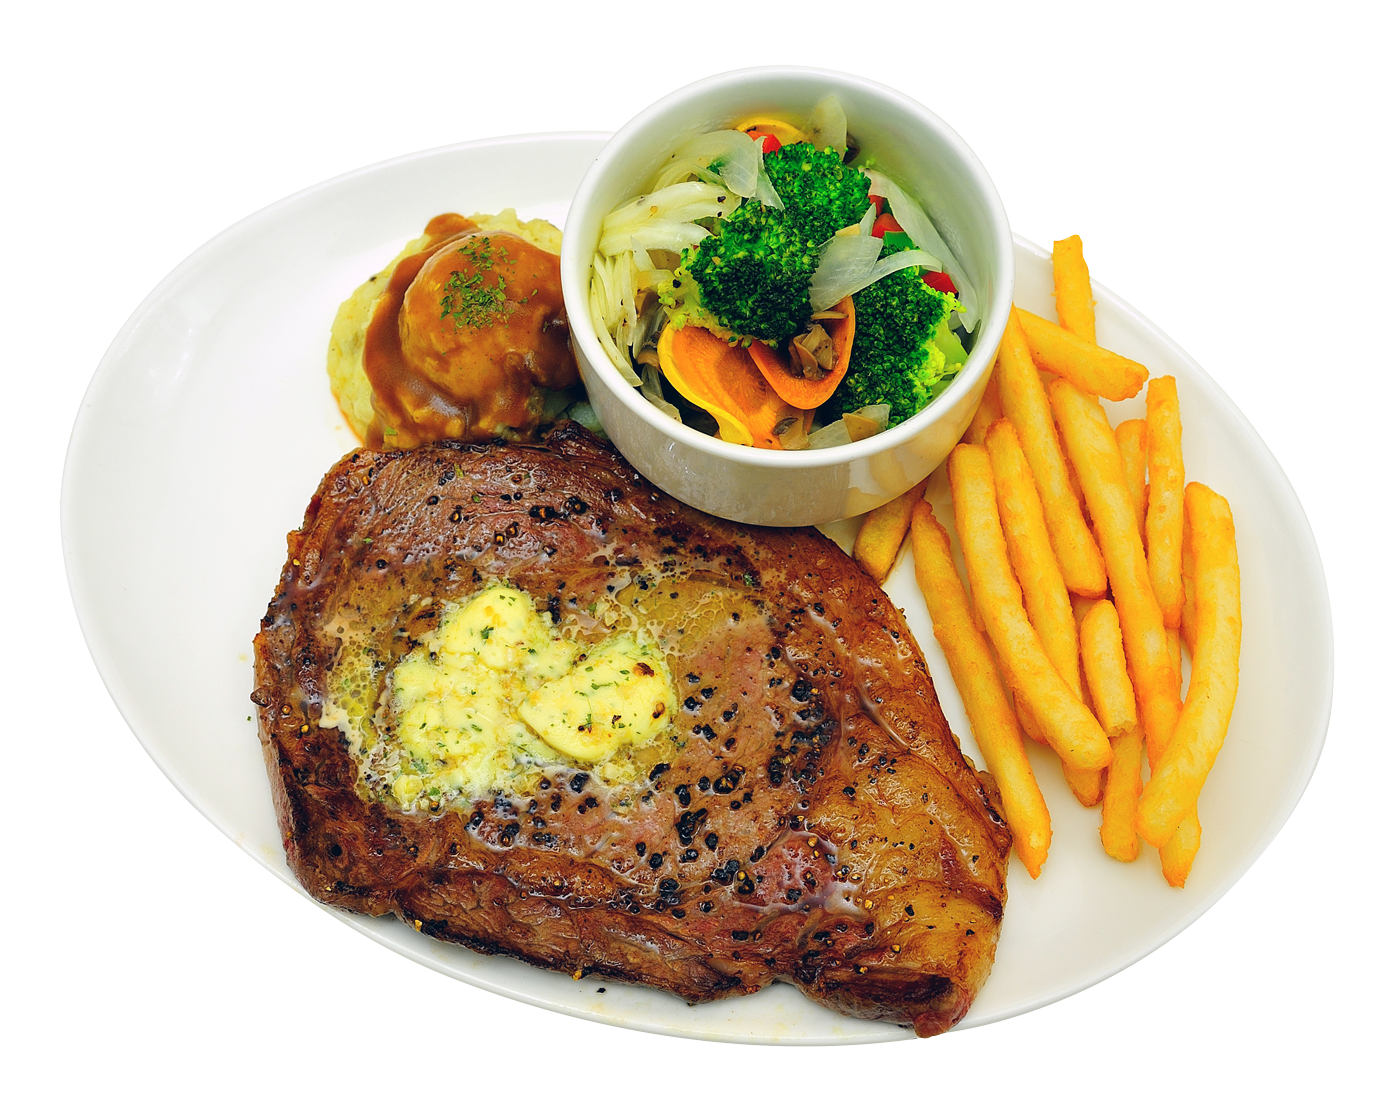 Food Plate Png Image Food Fish And Chips Restaurant Best Fish And Chips